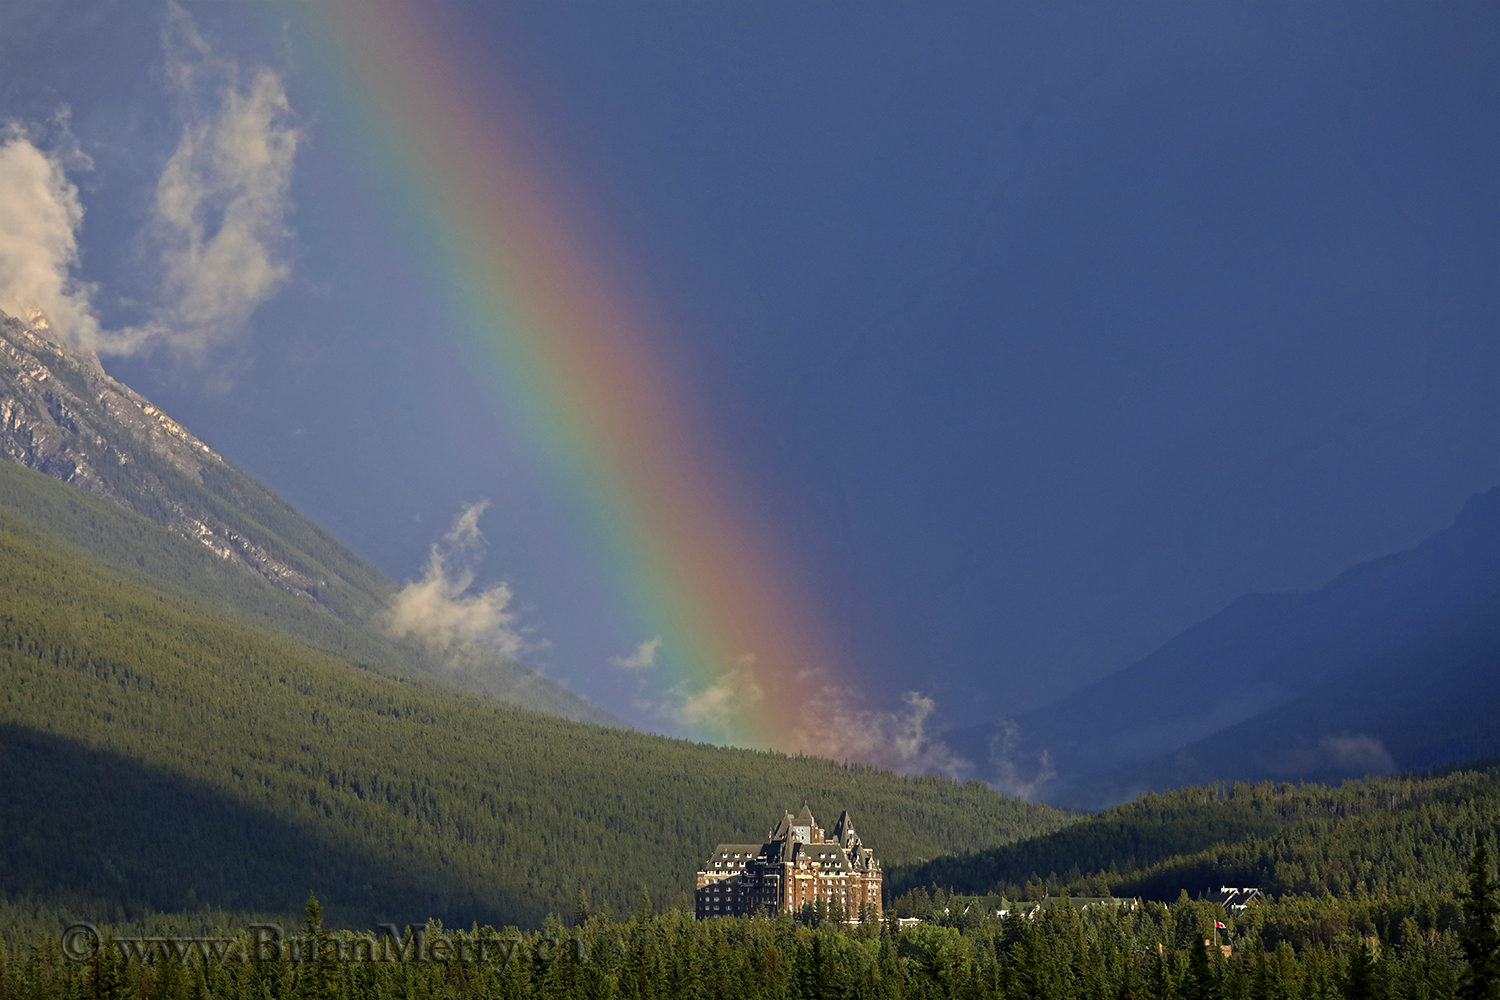 Rainbow over the Banff Springs Hotel, © www.brianmerry.ca